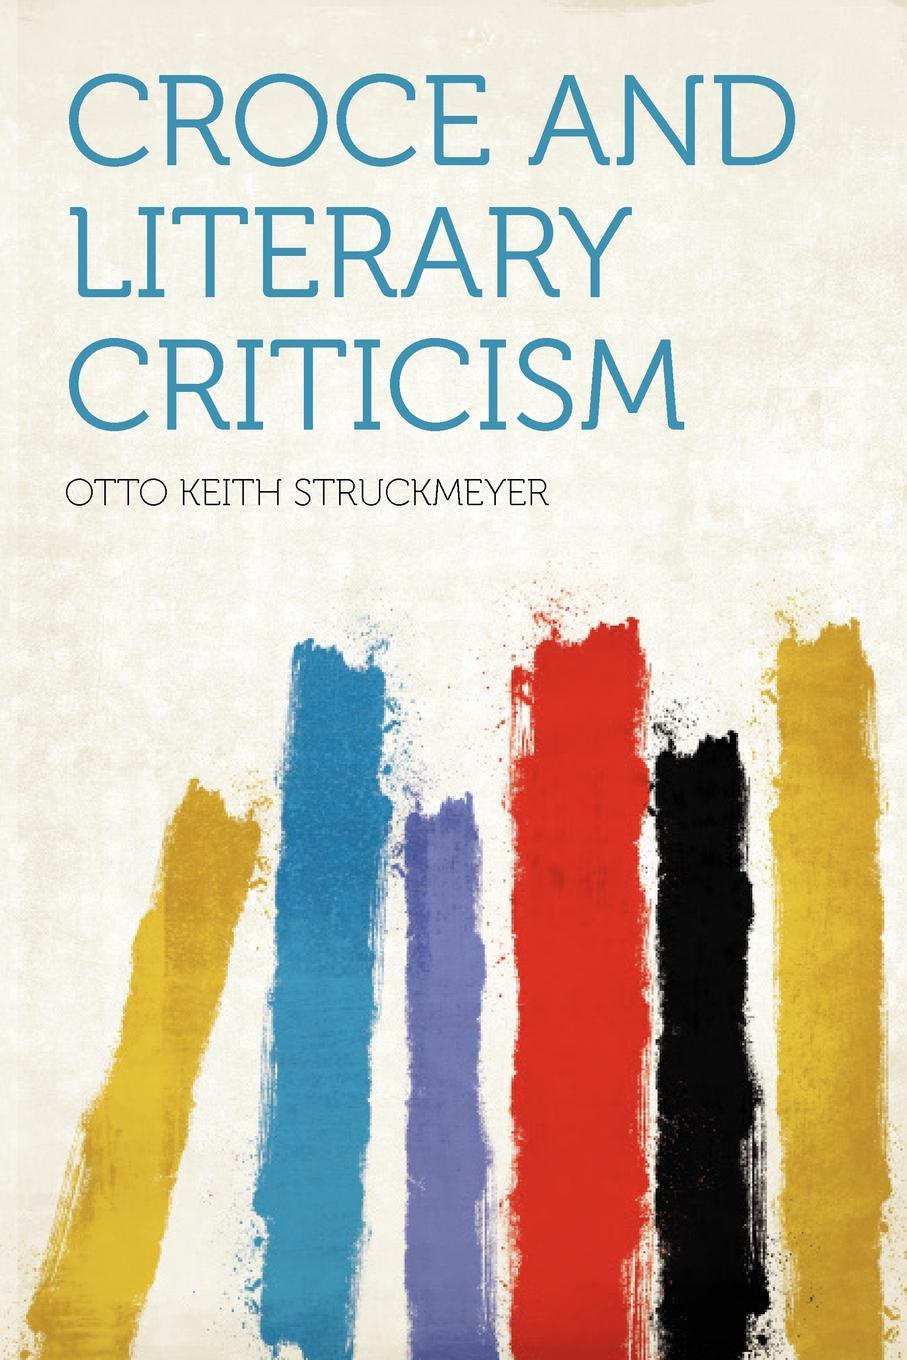 Croce and Literary Criticism